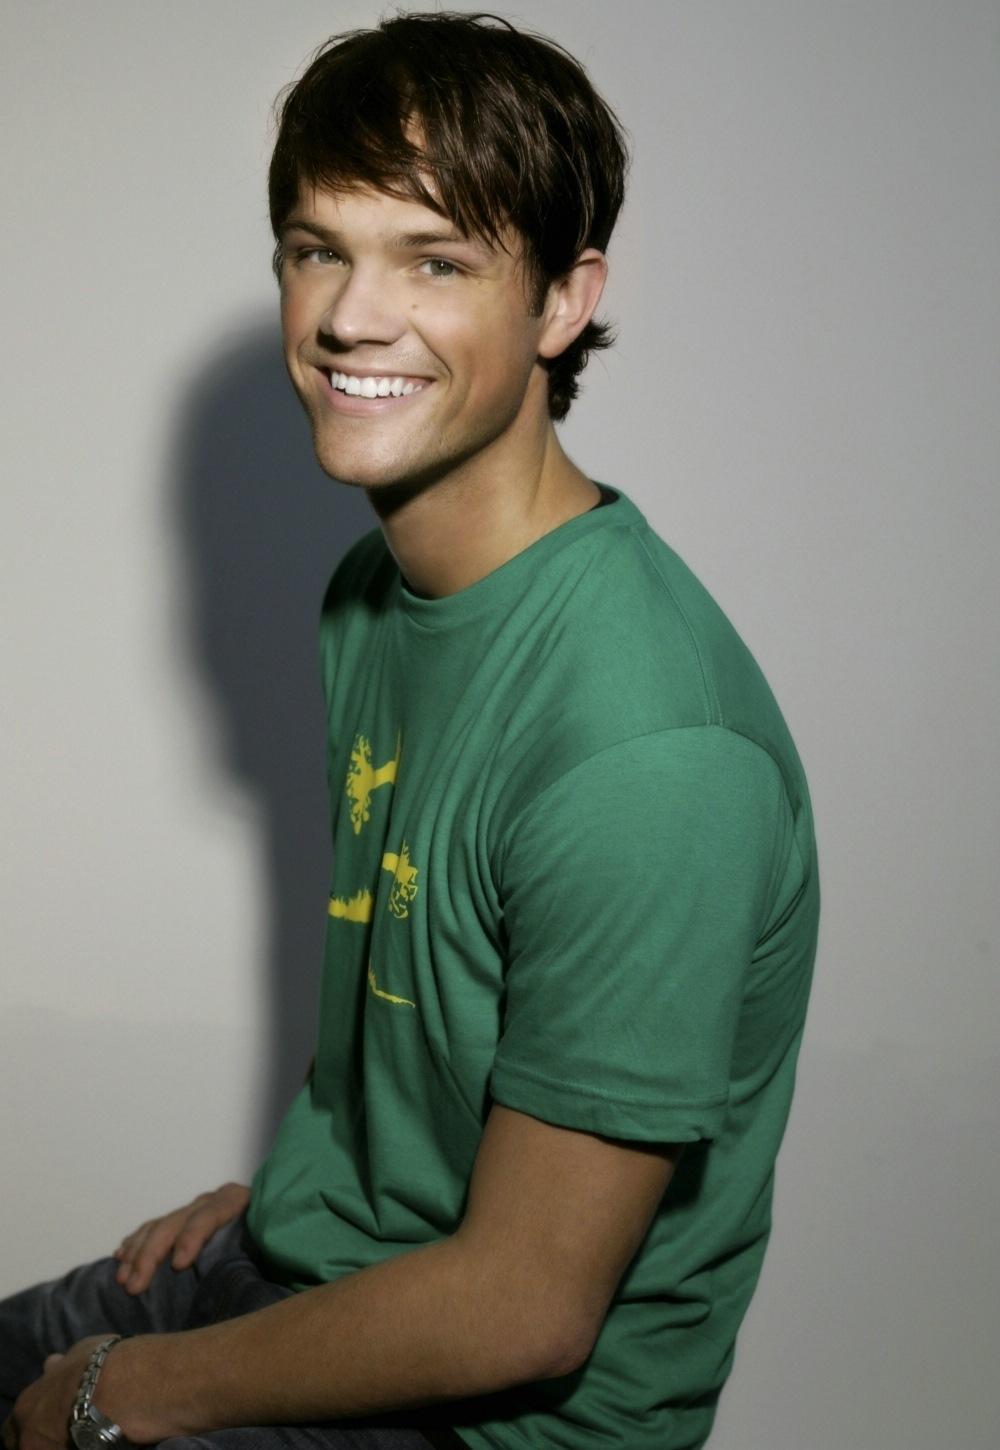 Jared Padalecki images Jared